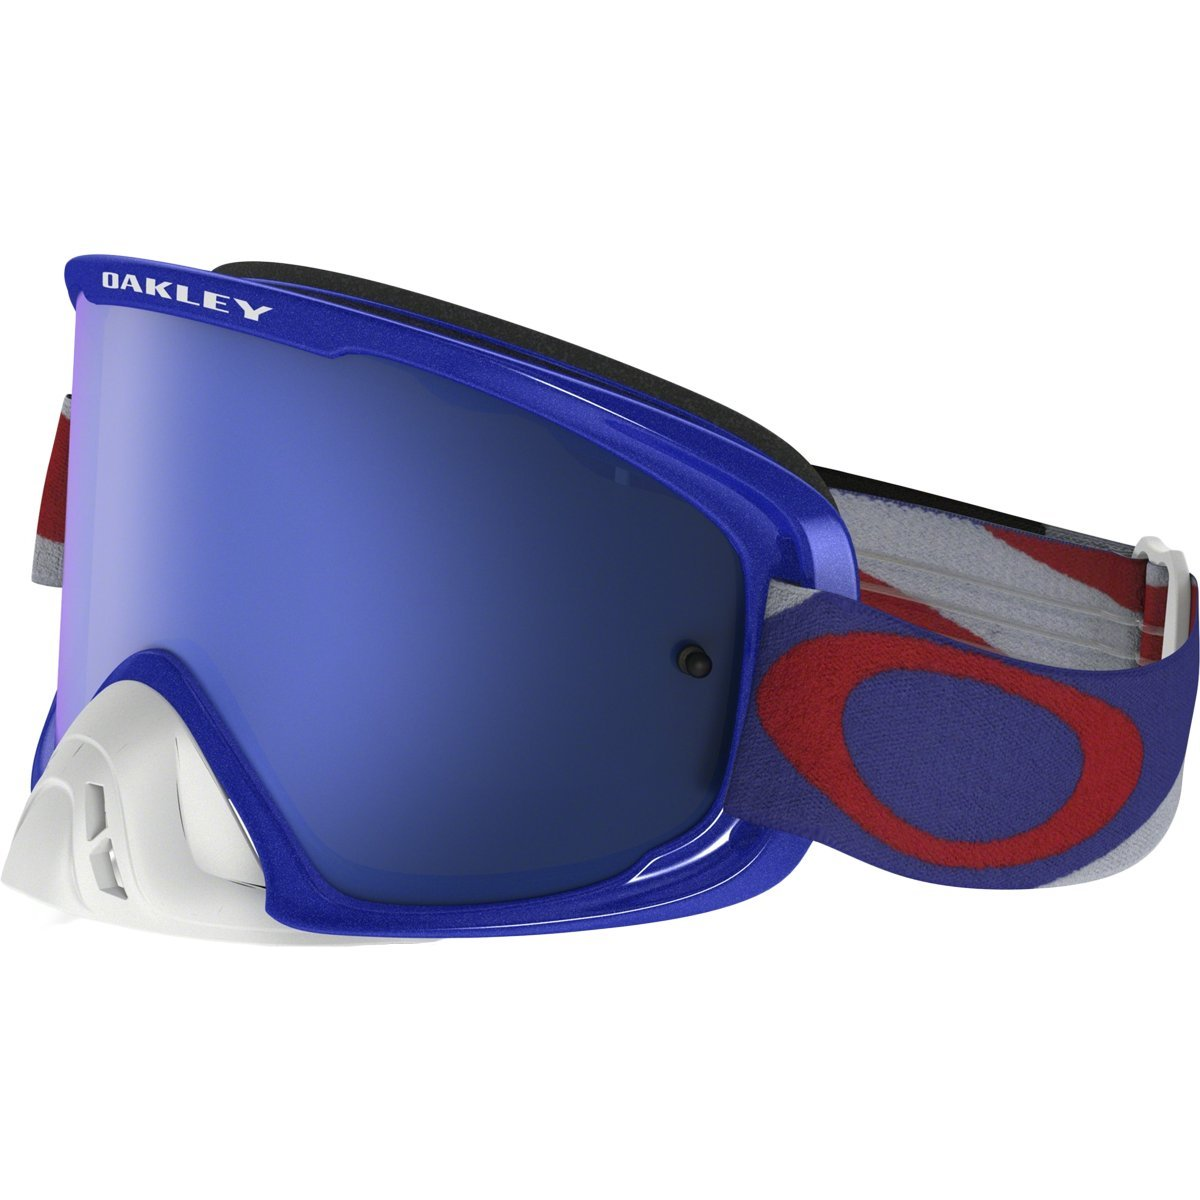 Oakley O2 MX Heritage Racer Adult Off-Road Motorcycle Goggles Eyewear - RWB/Black Ice & Clear/One Size Fits All